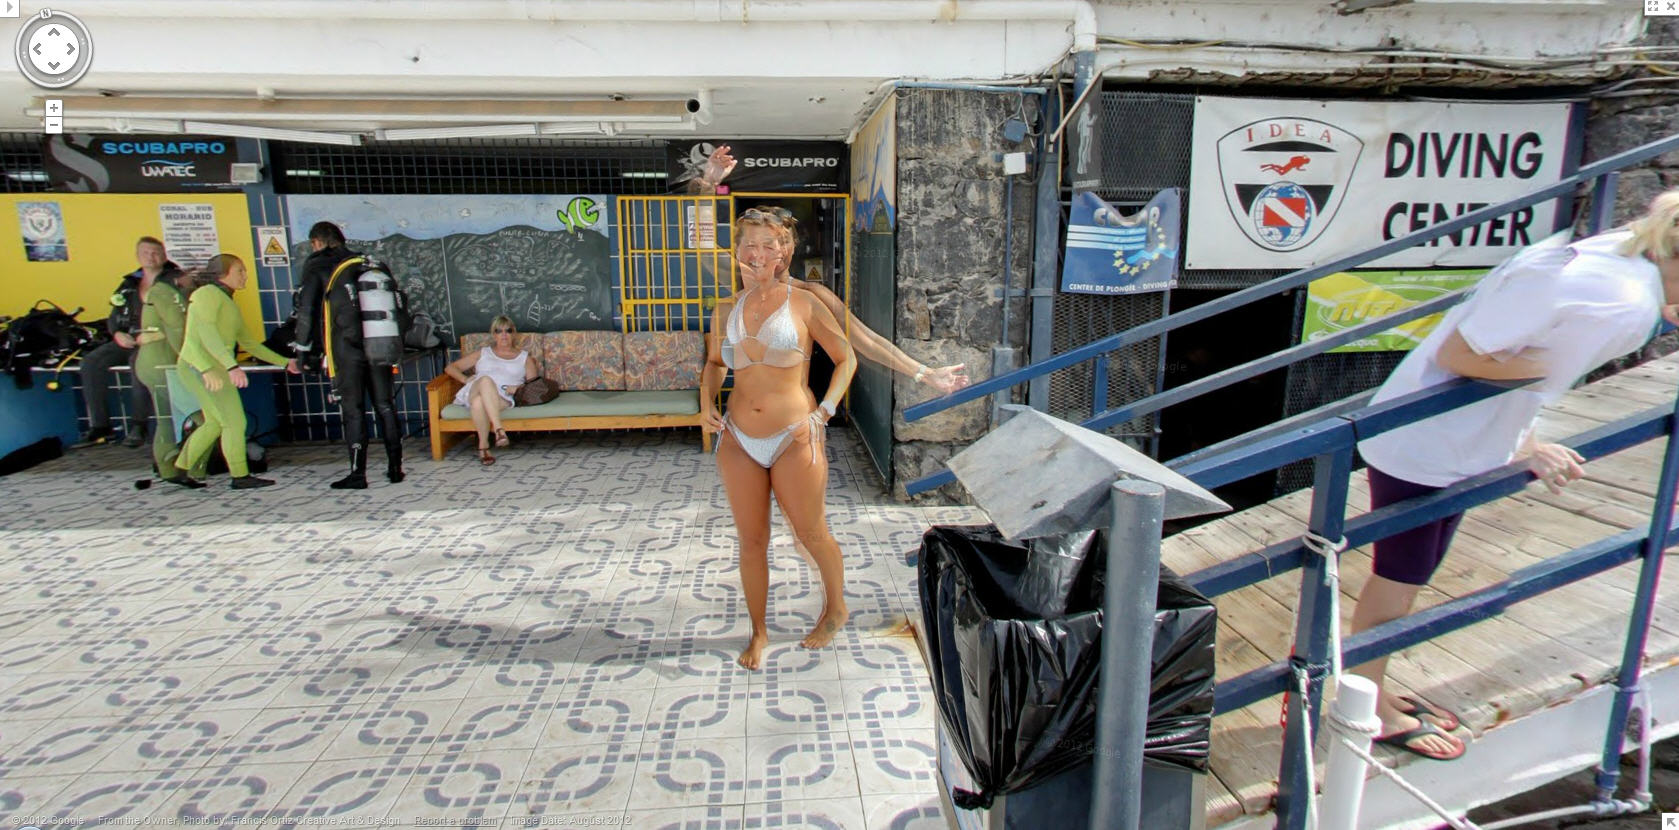 google-maps-street-view-captures-a-girl-with-a-visible-aura